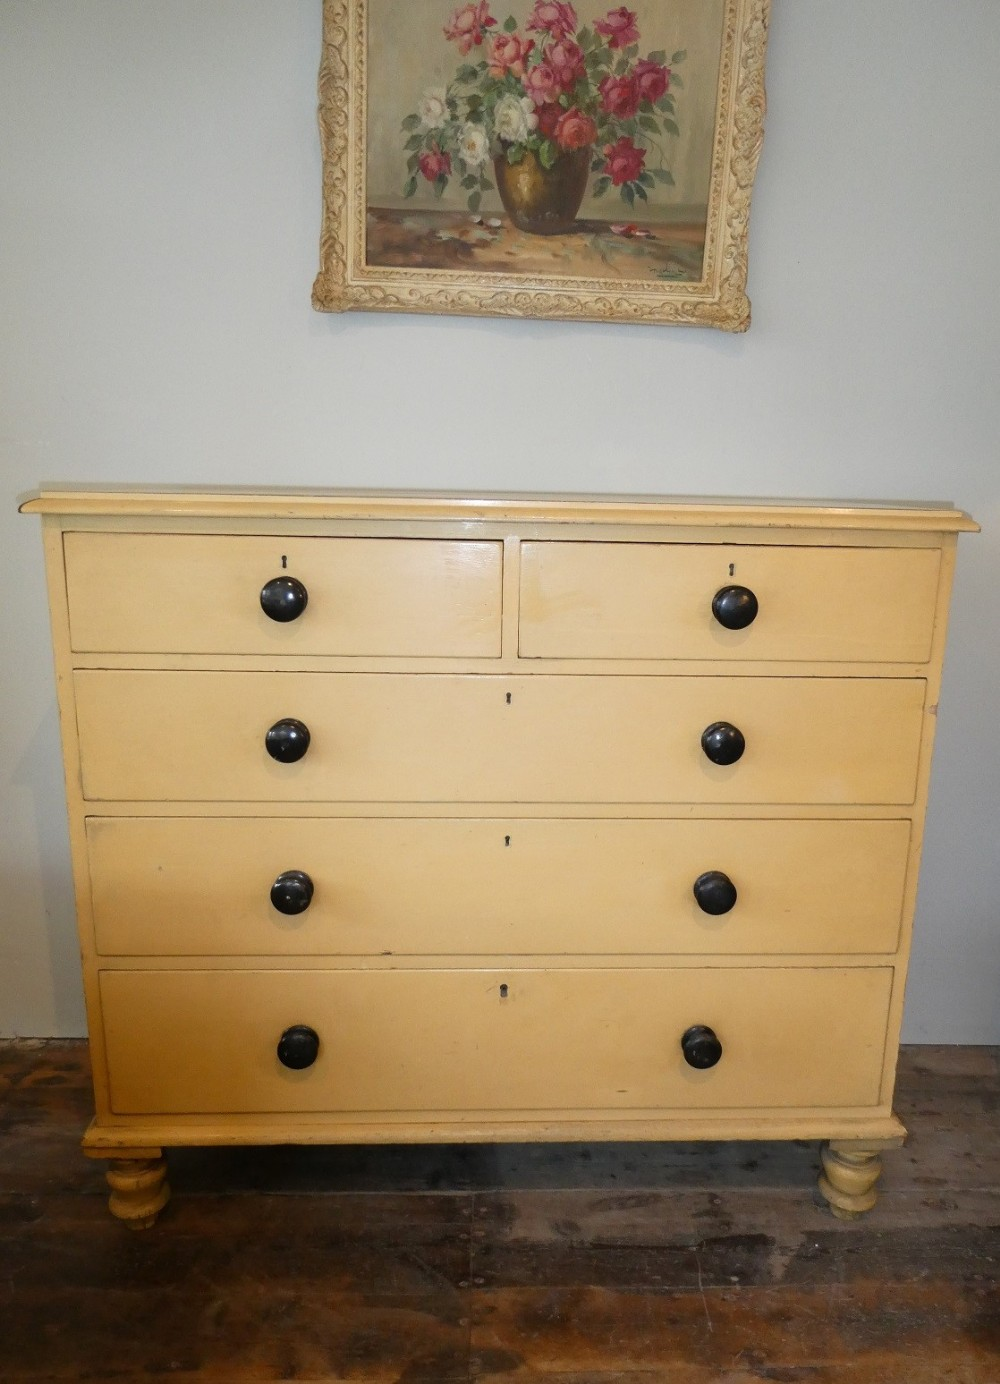 19thc painted chest of drawers